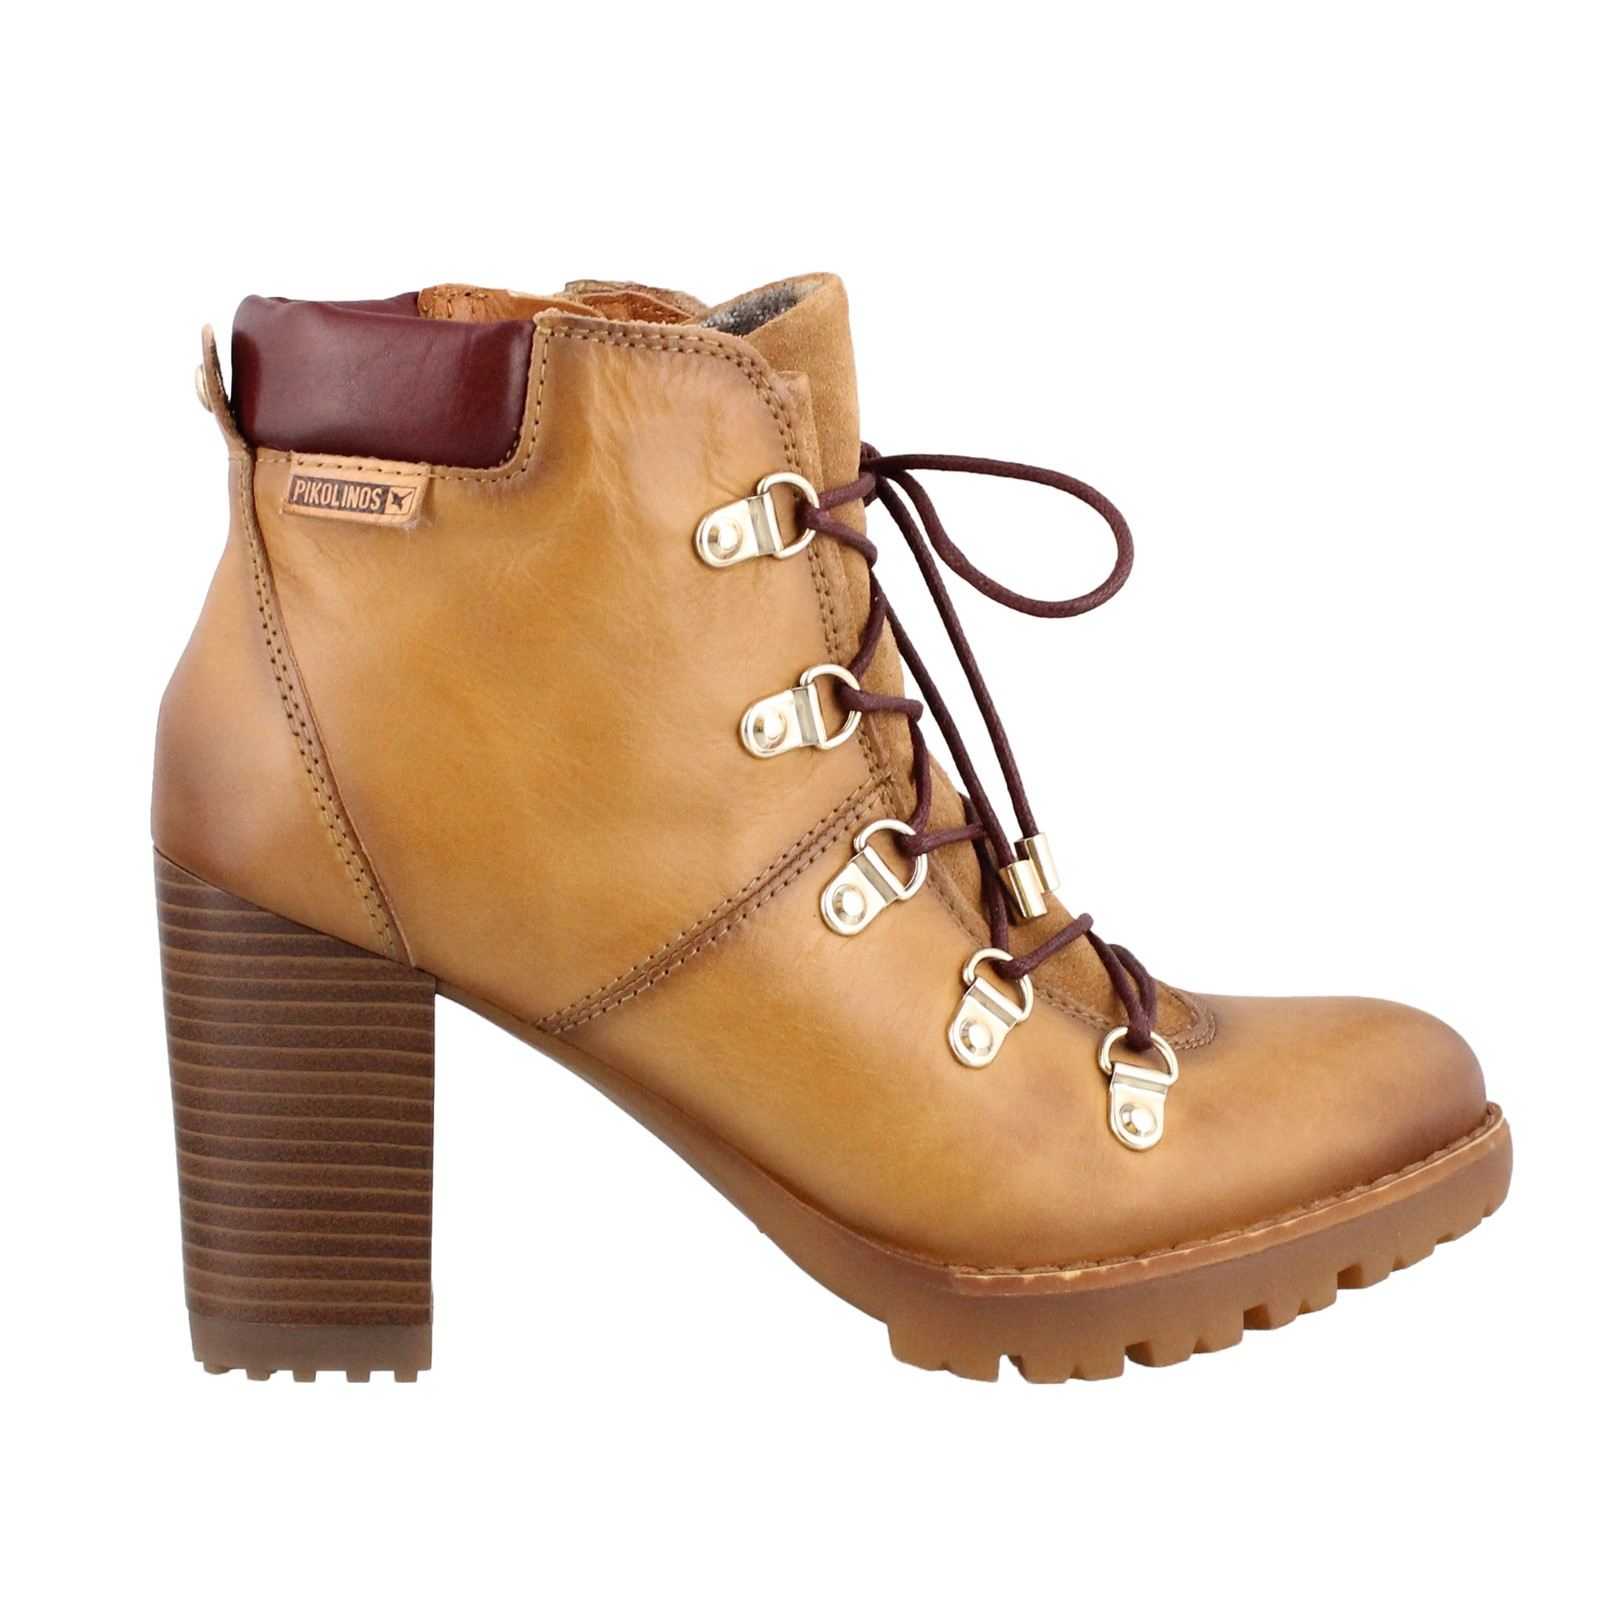 Women's Pikolinos, Connelly Boot